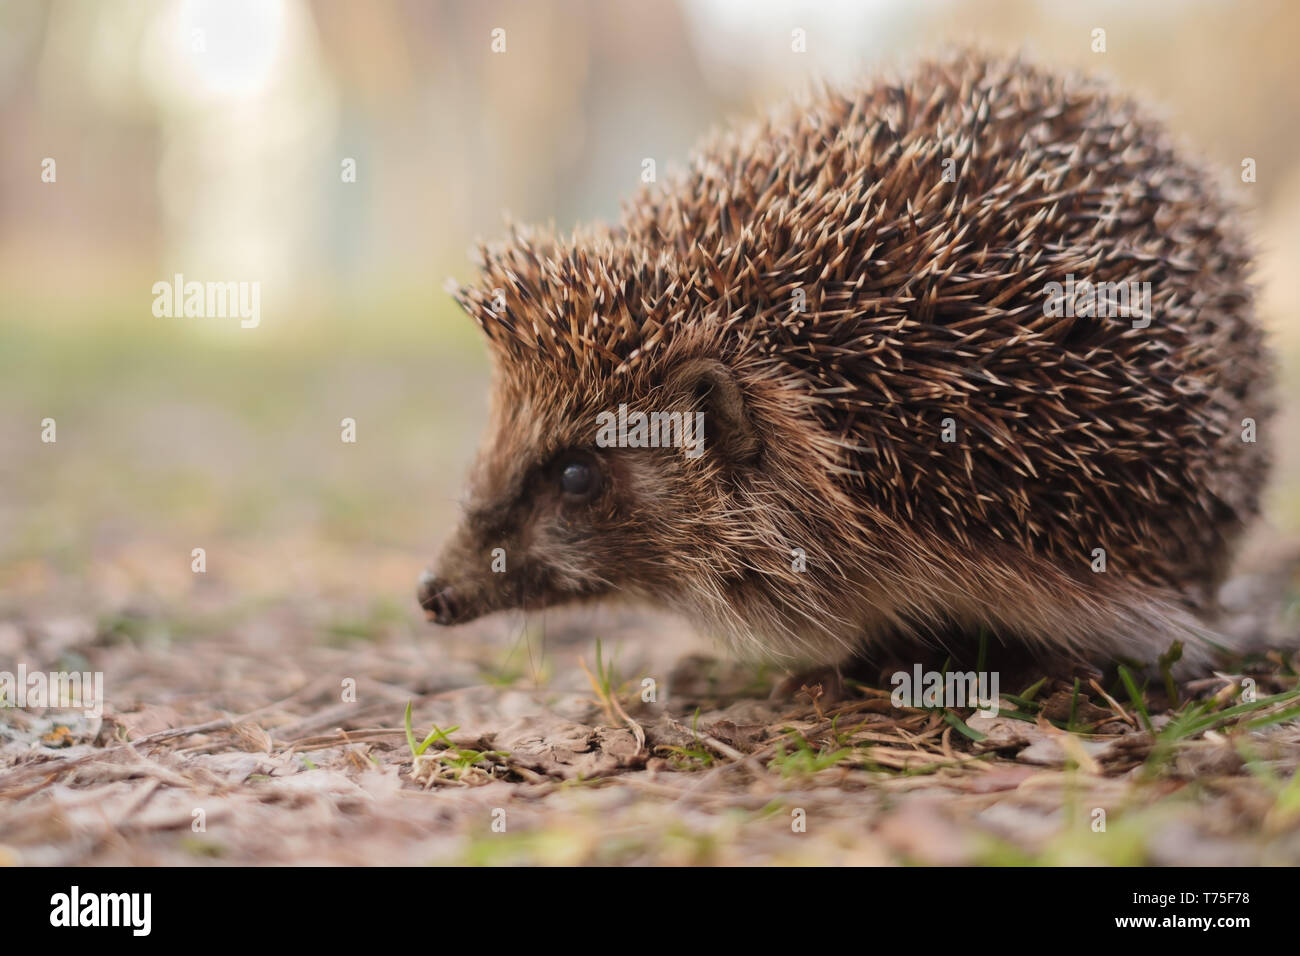 European Hedgehog, Erinaceus europaeus, closeup. Cute funny animal - Stock Image